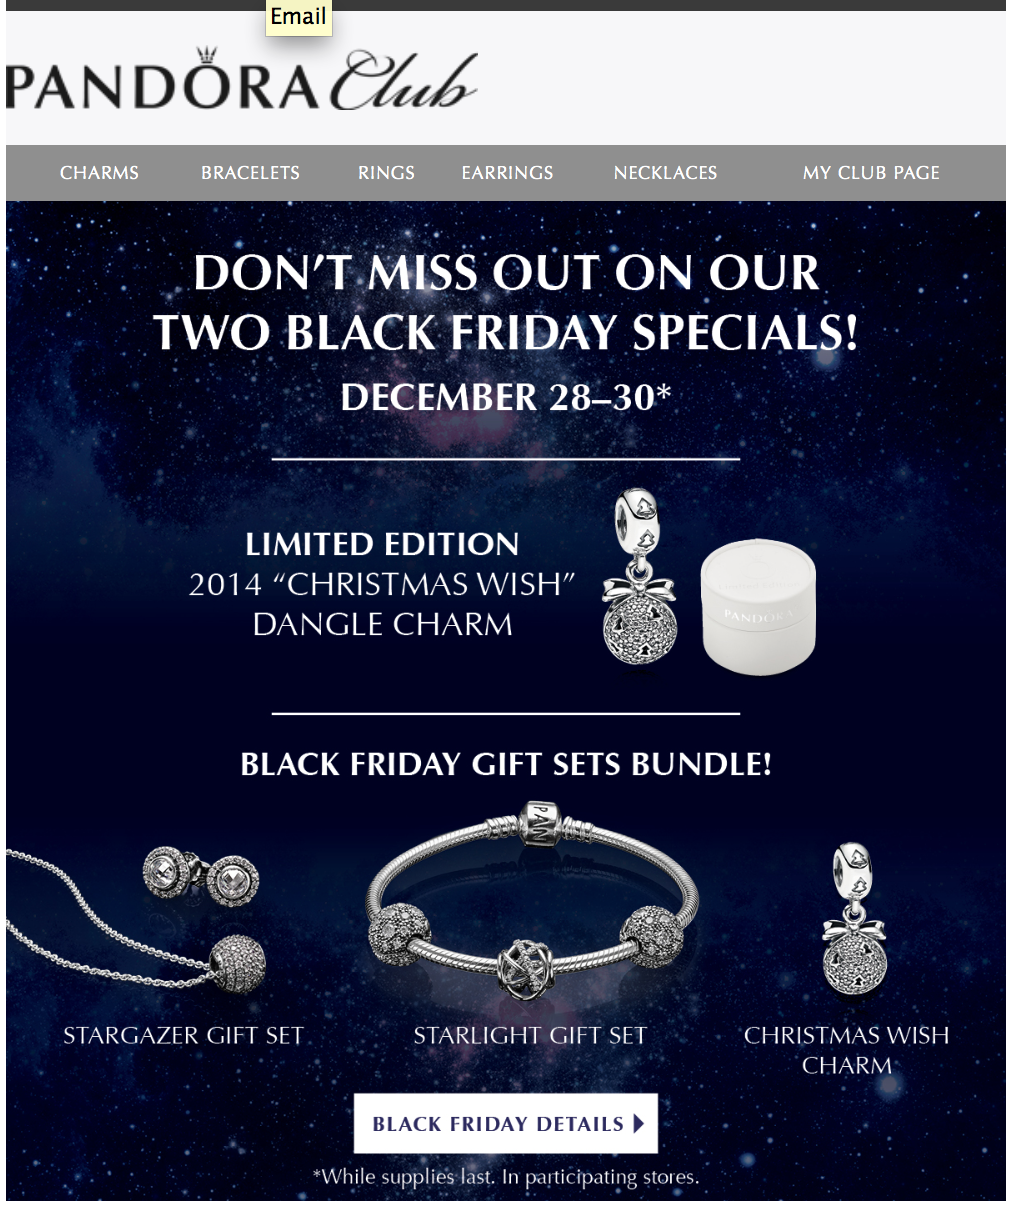 Give a dazzling gift of holiday cheer this year with exclusive jewelry collections from Jared revealed on Black Friday Find amazing new jewelry from Pandora and Le Vian along with custom jewelry and accessories for her and him.